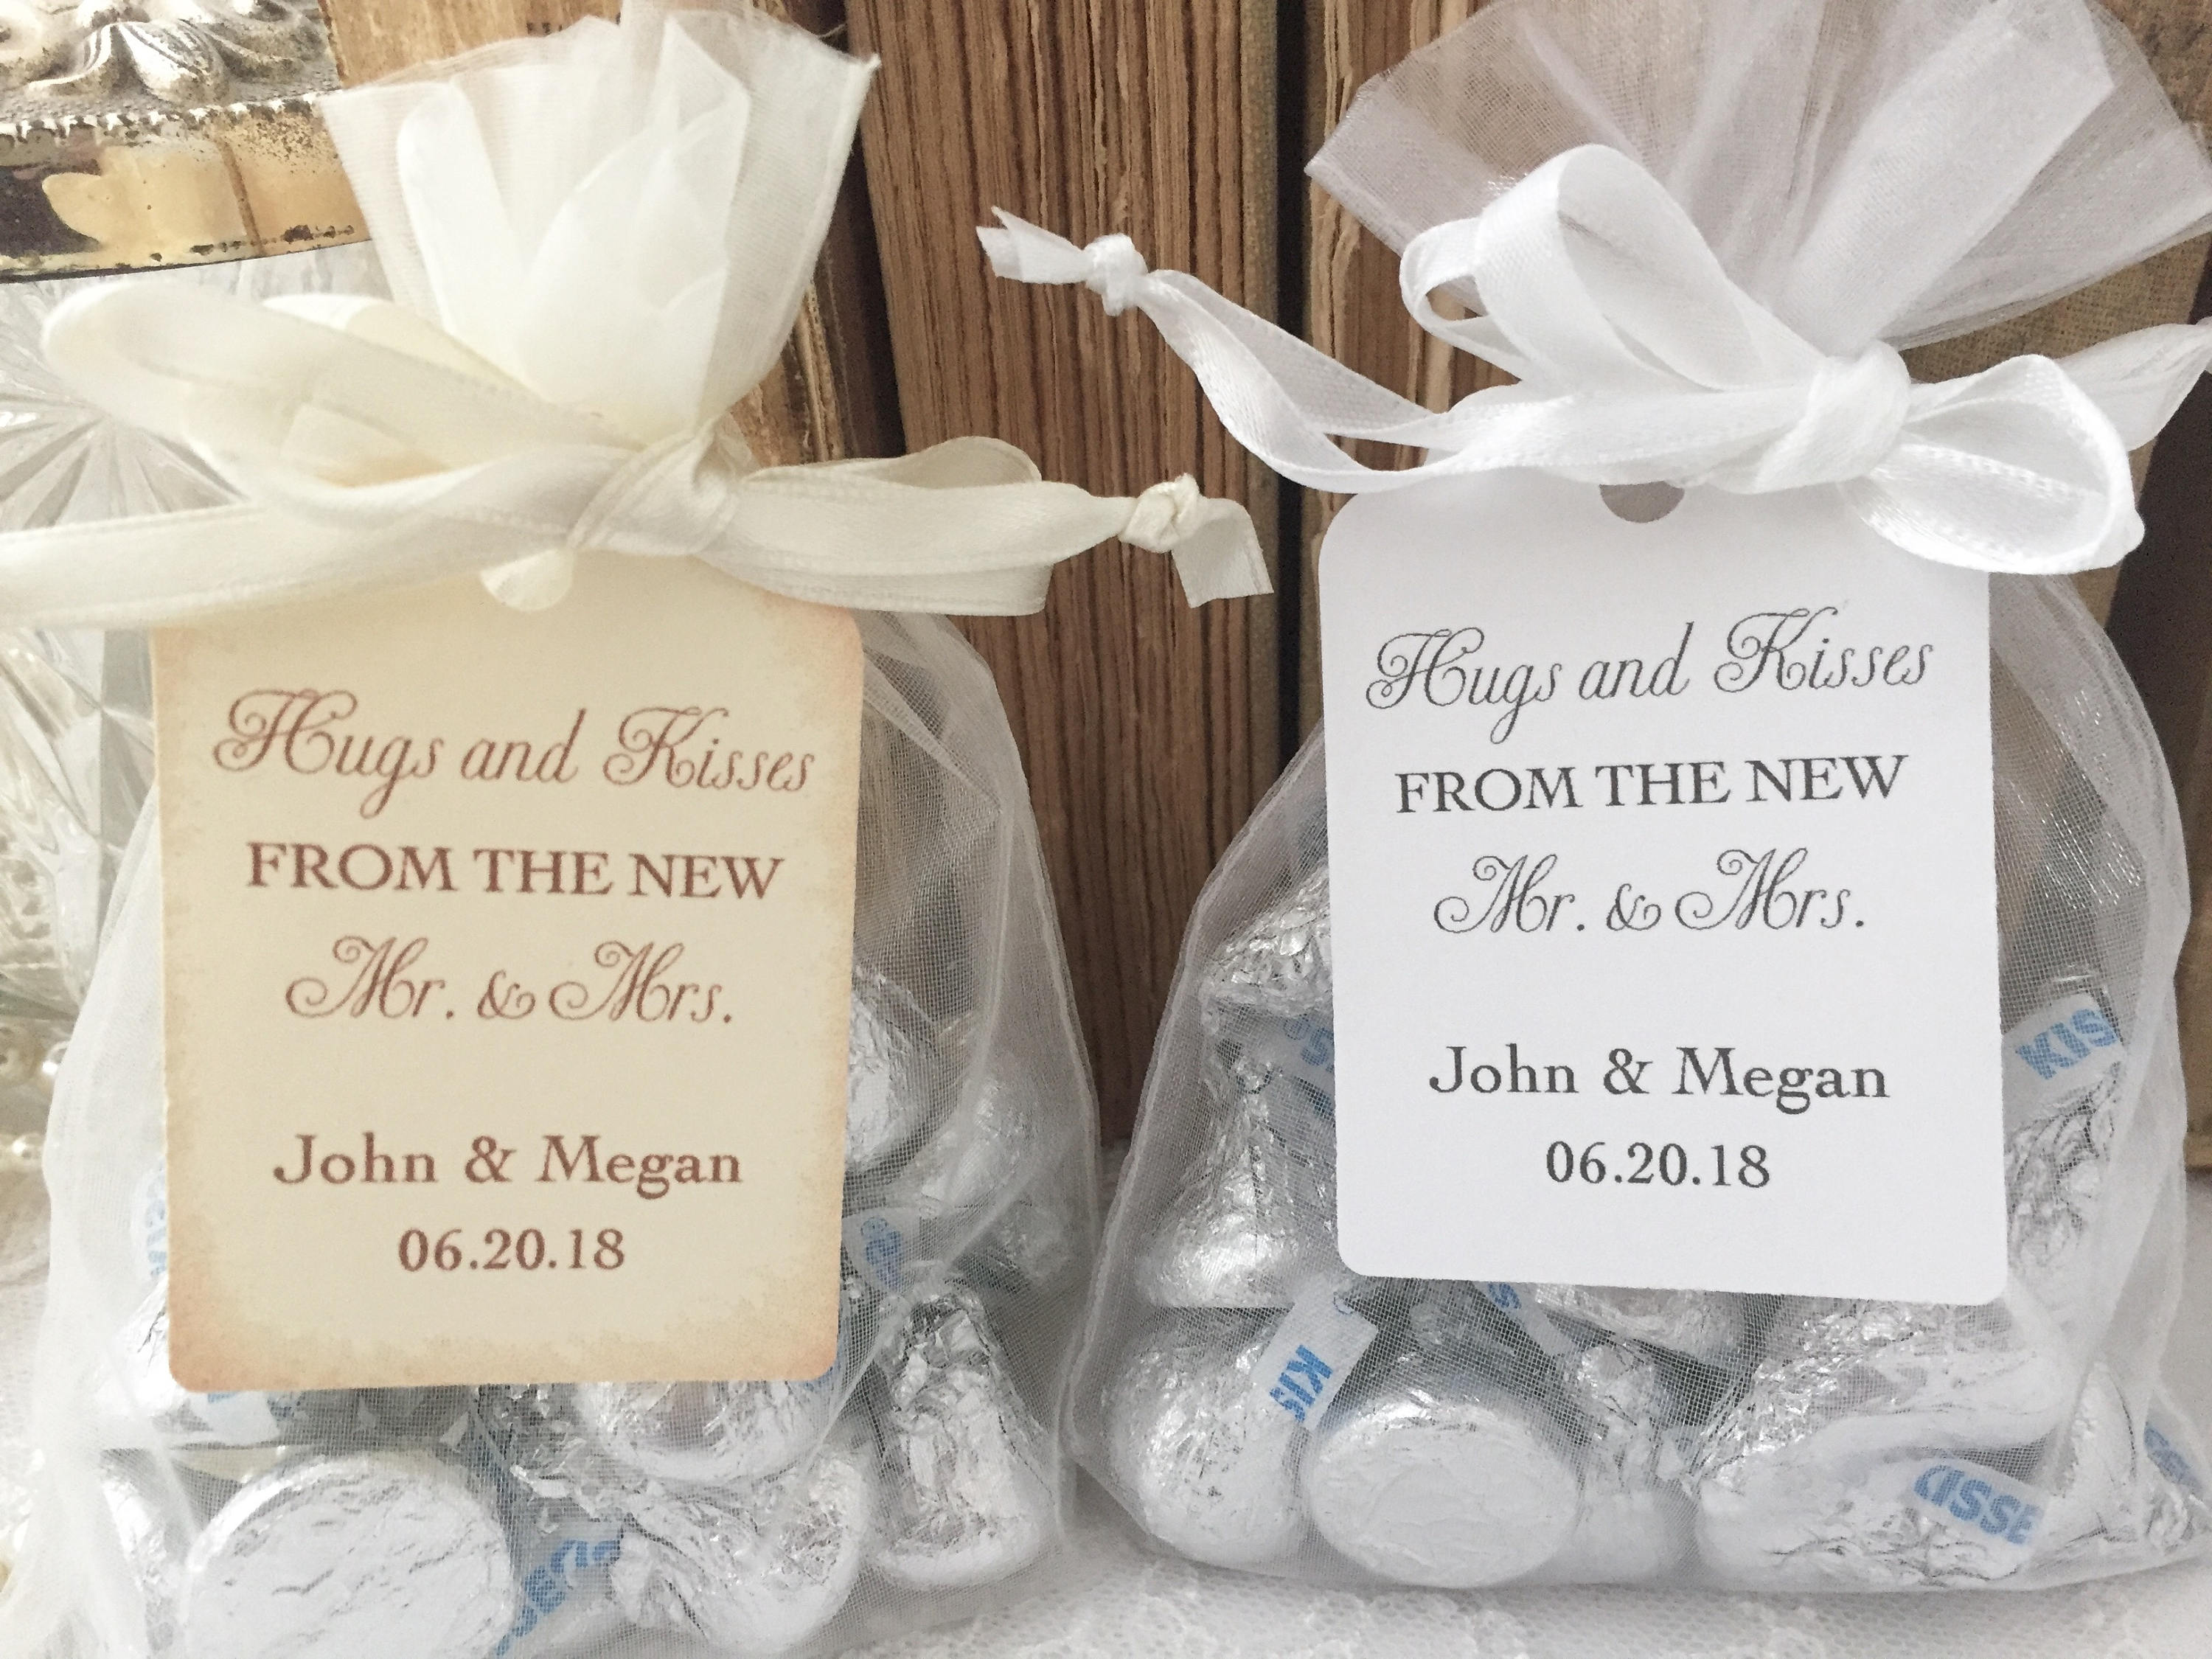 Luxury Wedding Favors Gift - Wedding Idea 2018 - veronikajackson.info